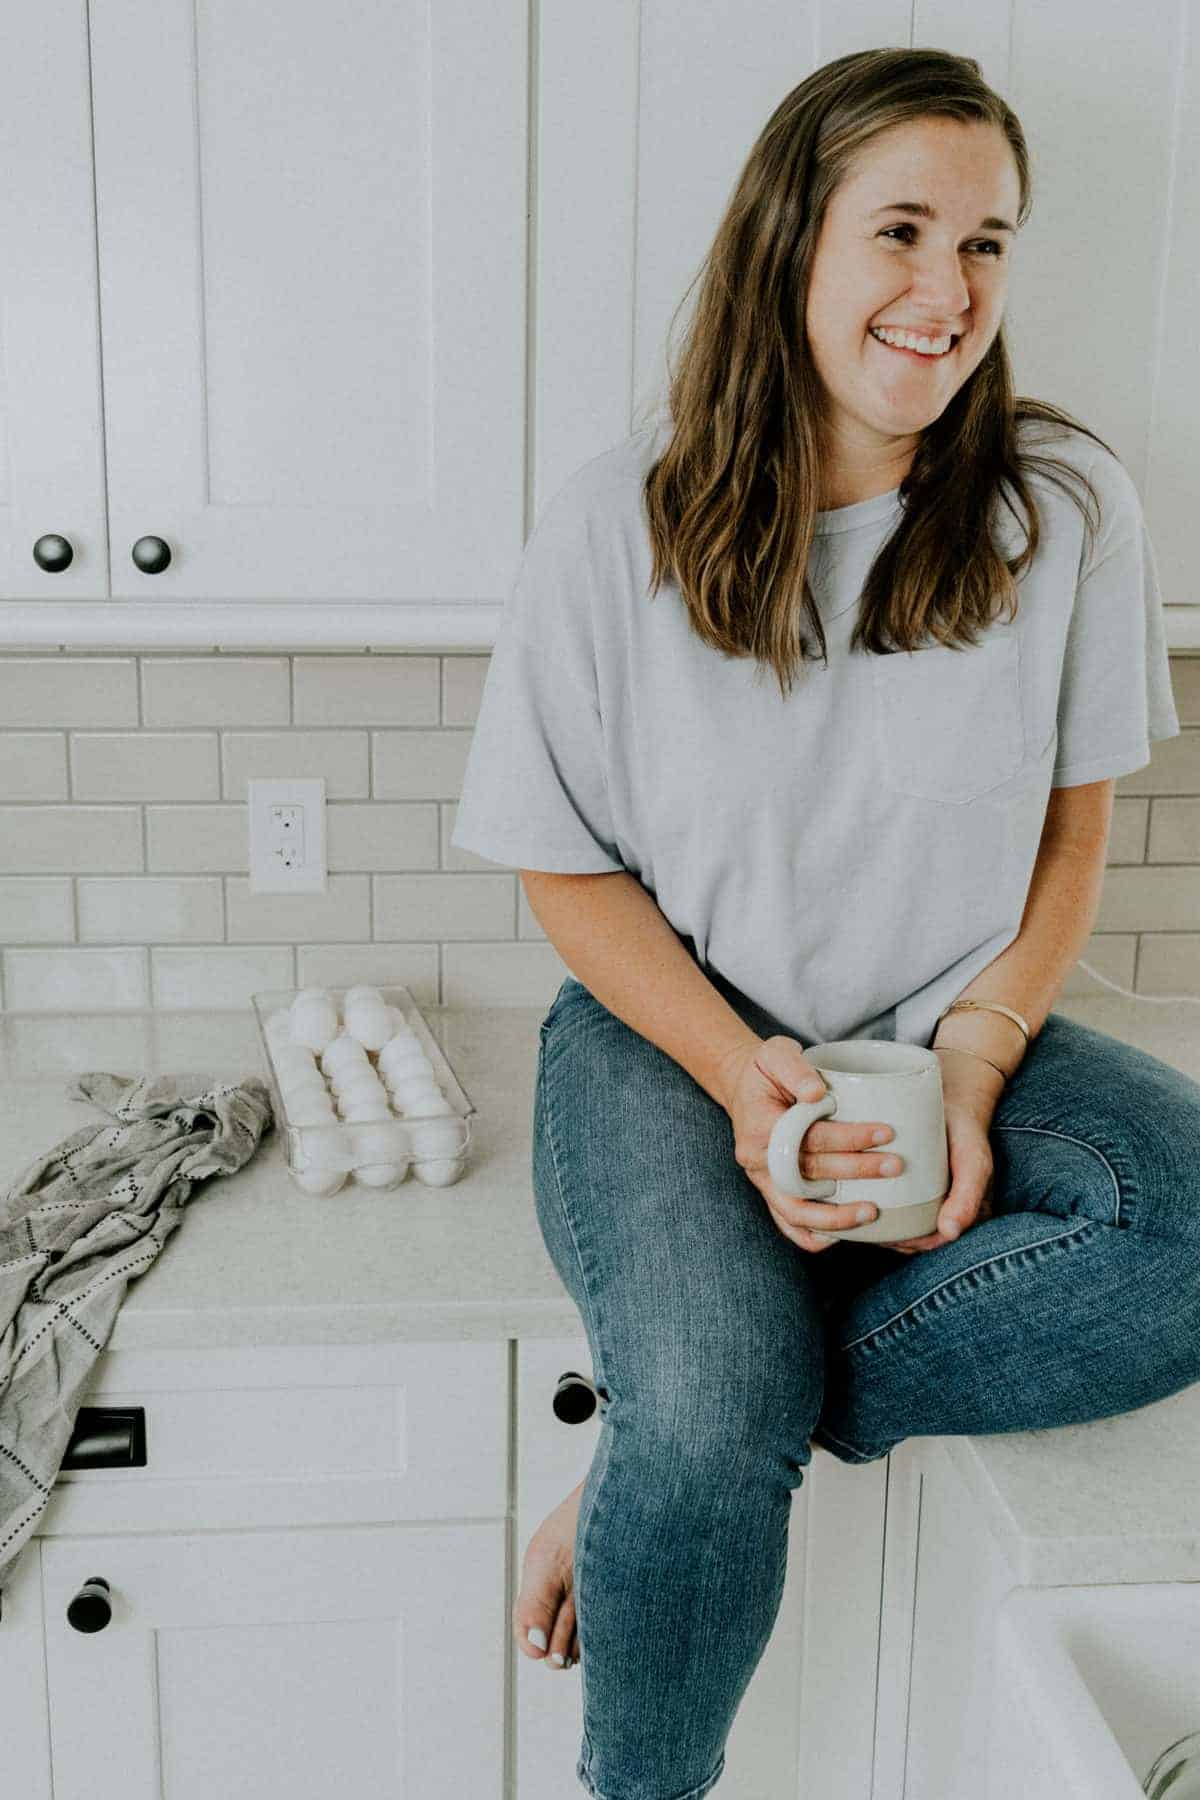 Kelly sitting on a counter with a coffee mug in hand and a tray of eggs next to her